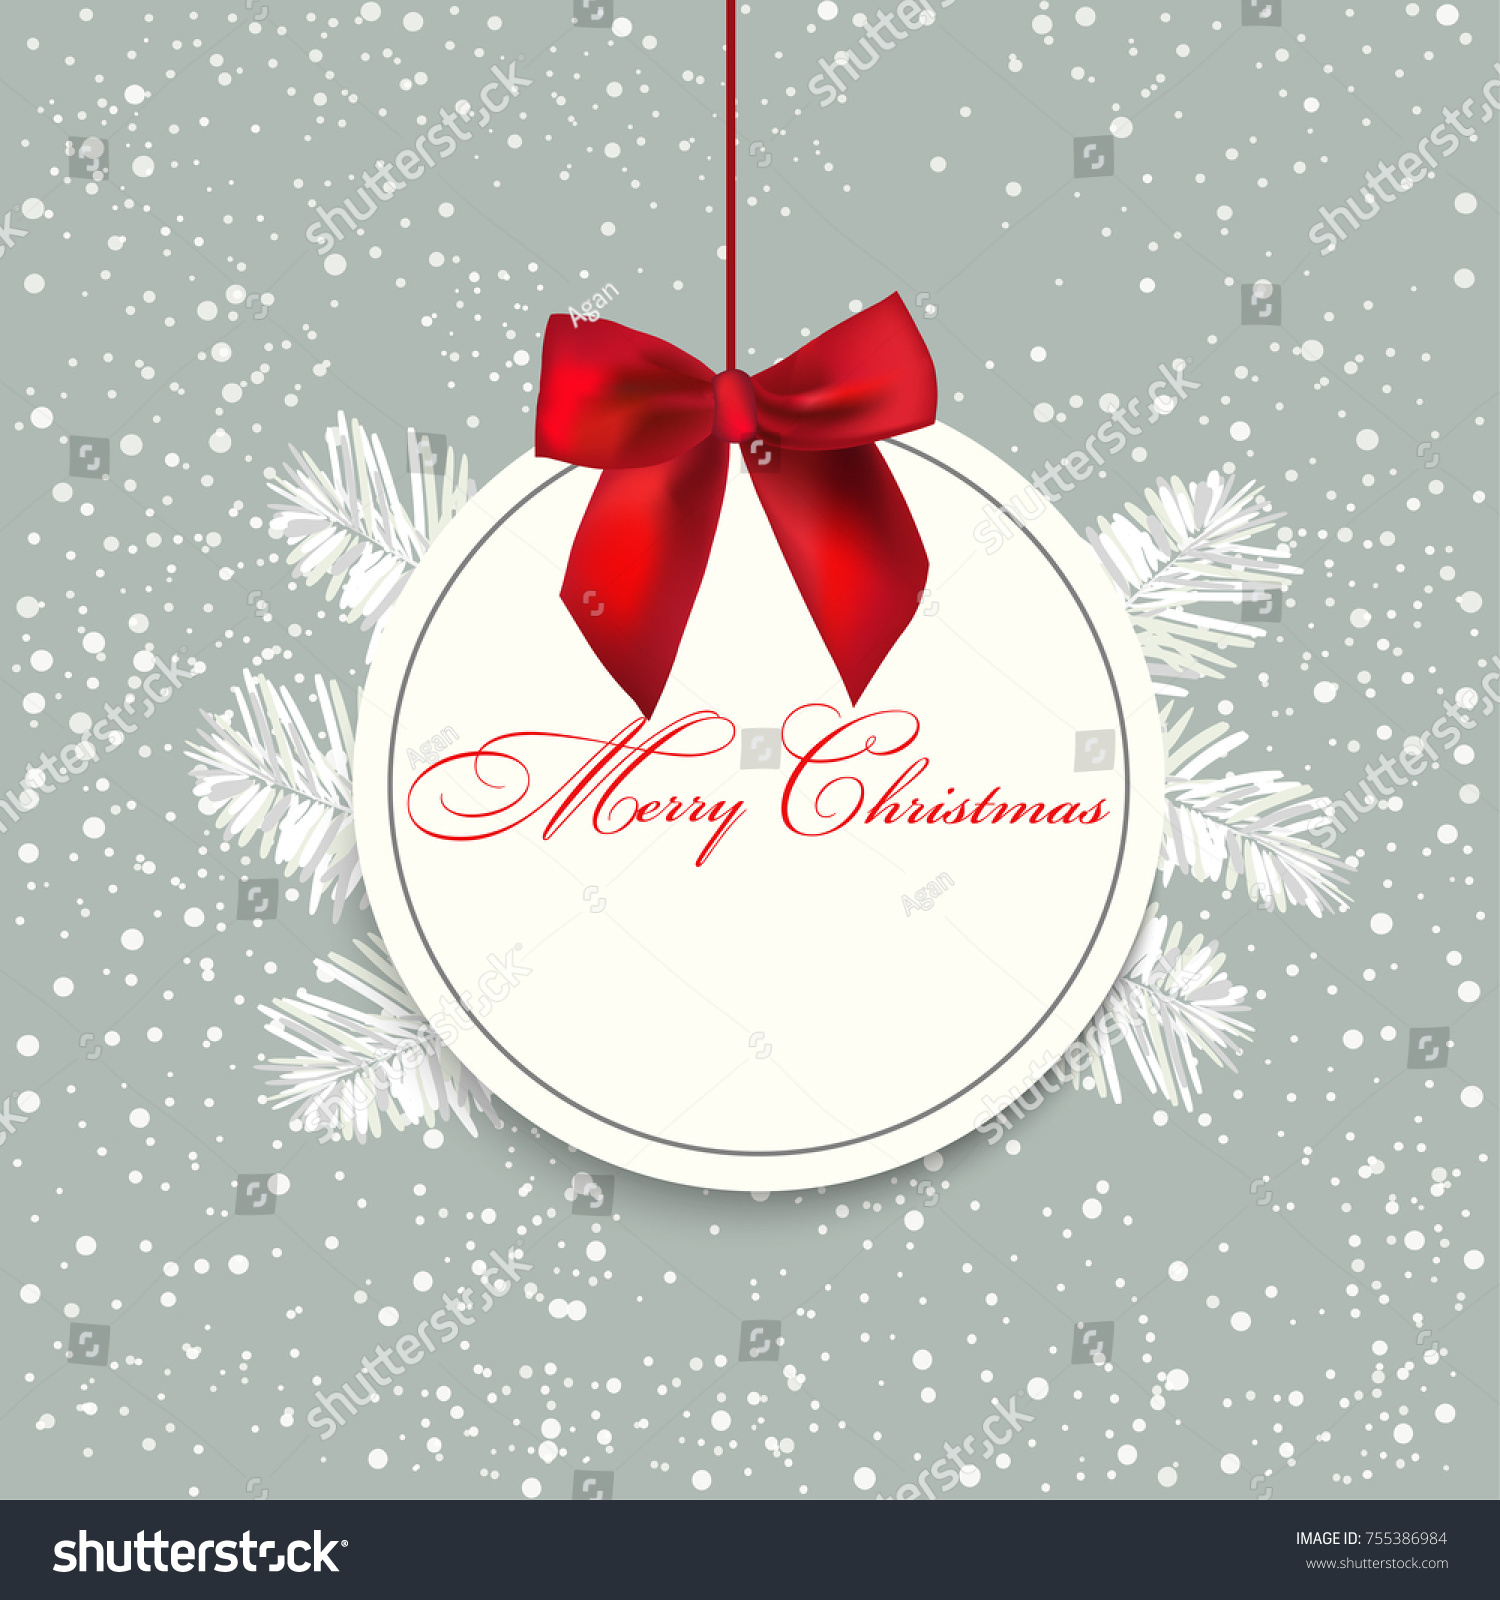 Christmas greeting card vector stock vector hd royalty free christmas greeting cardctor m4hsunfo